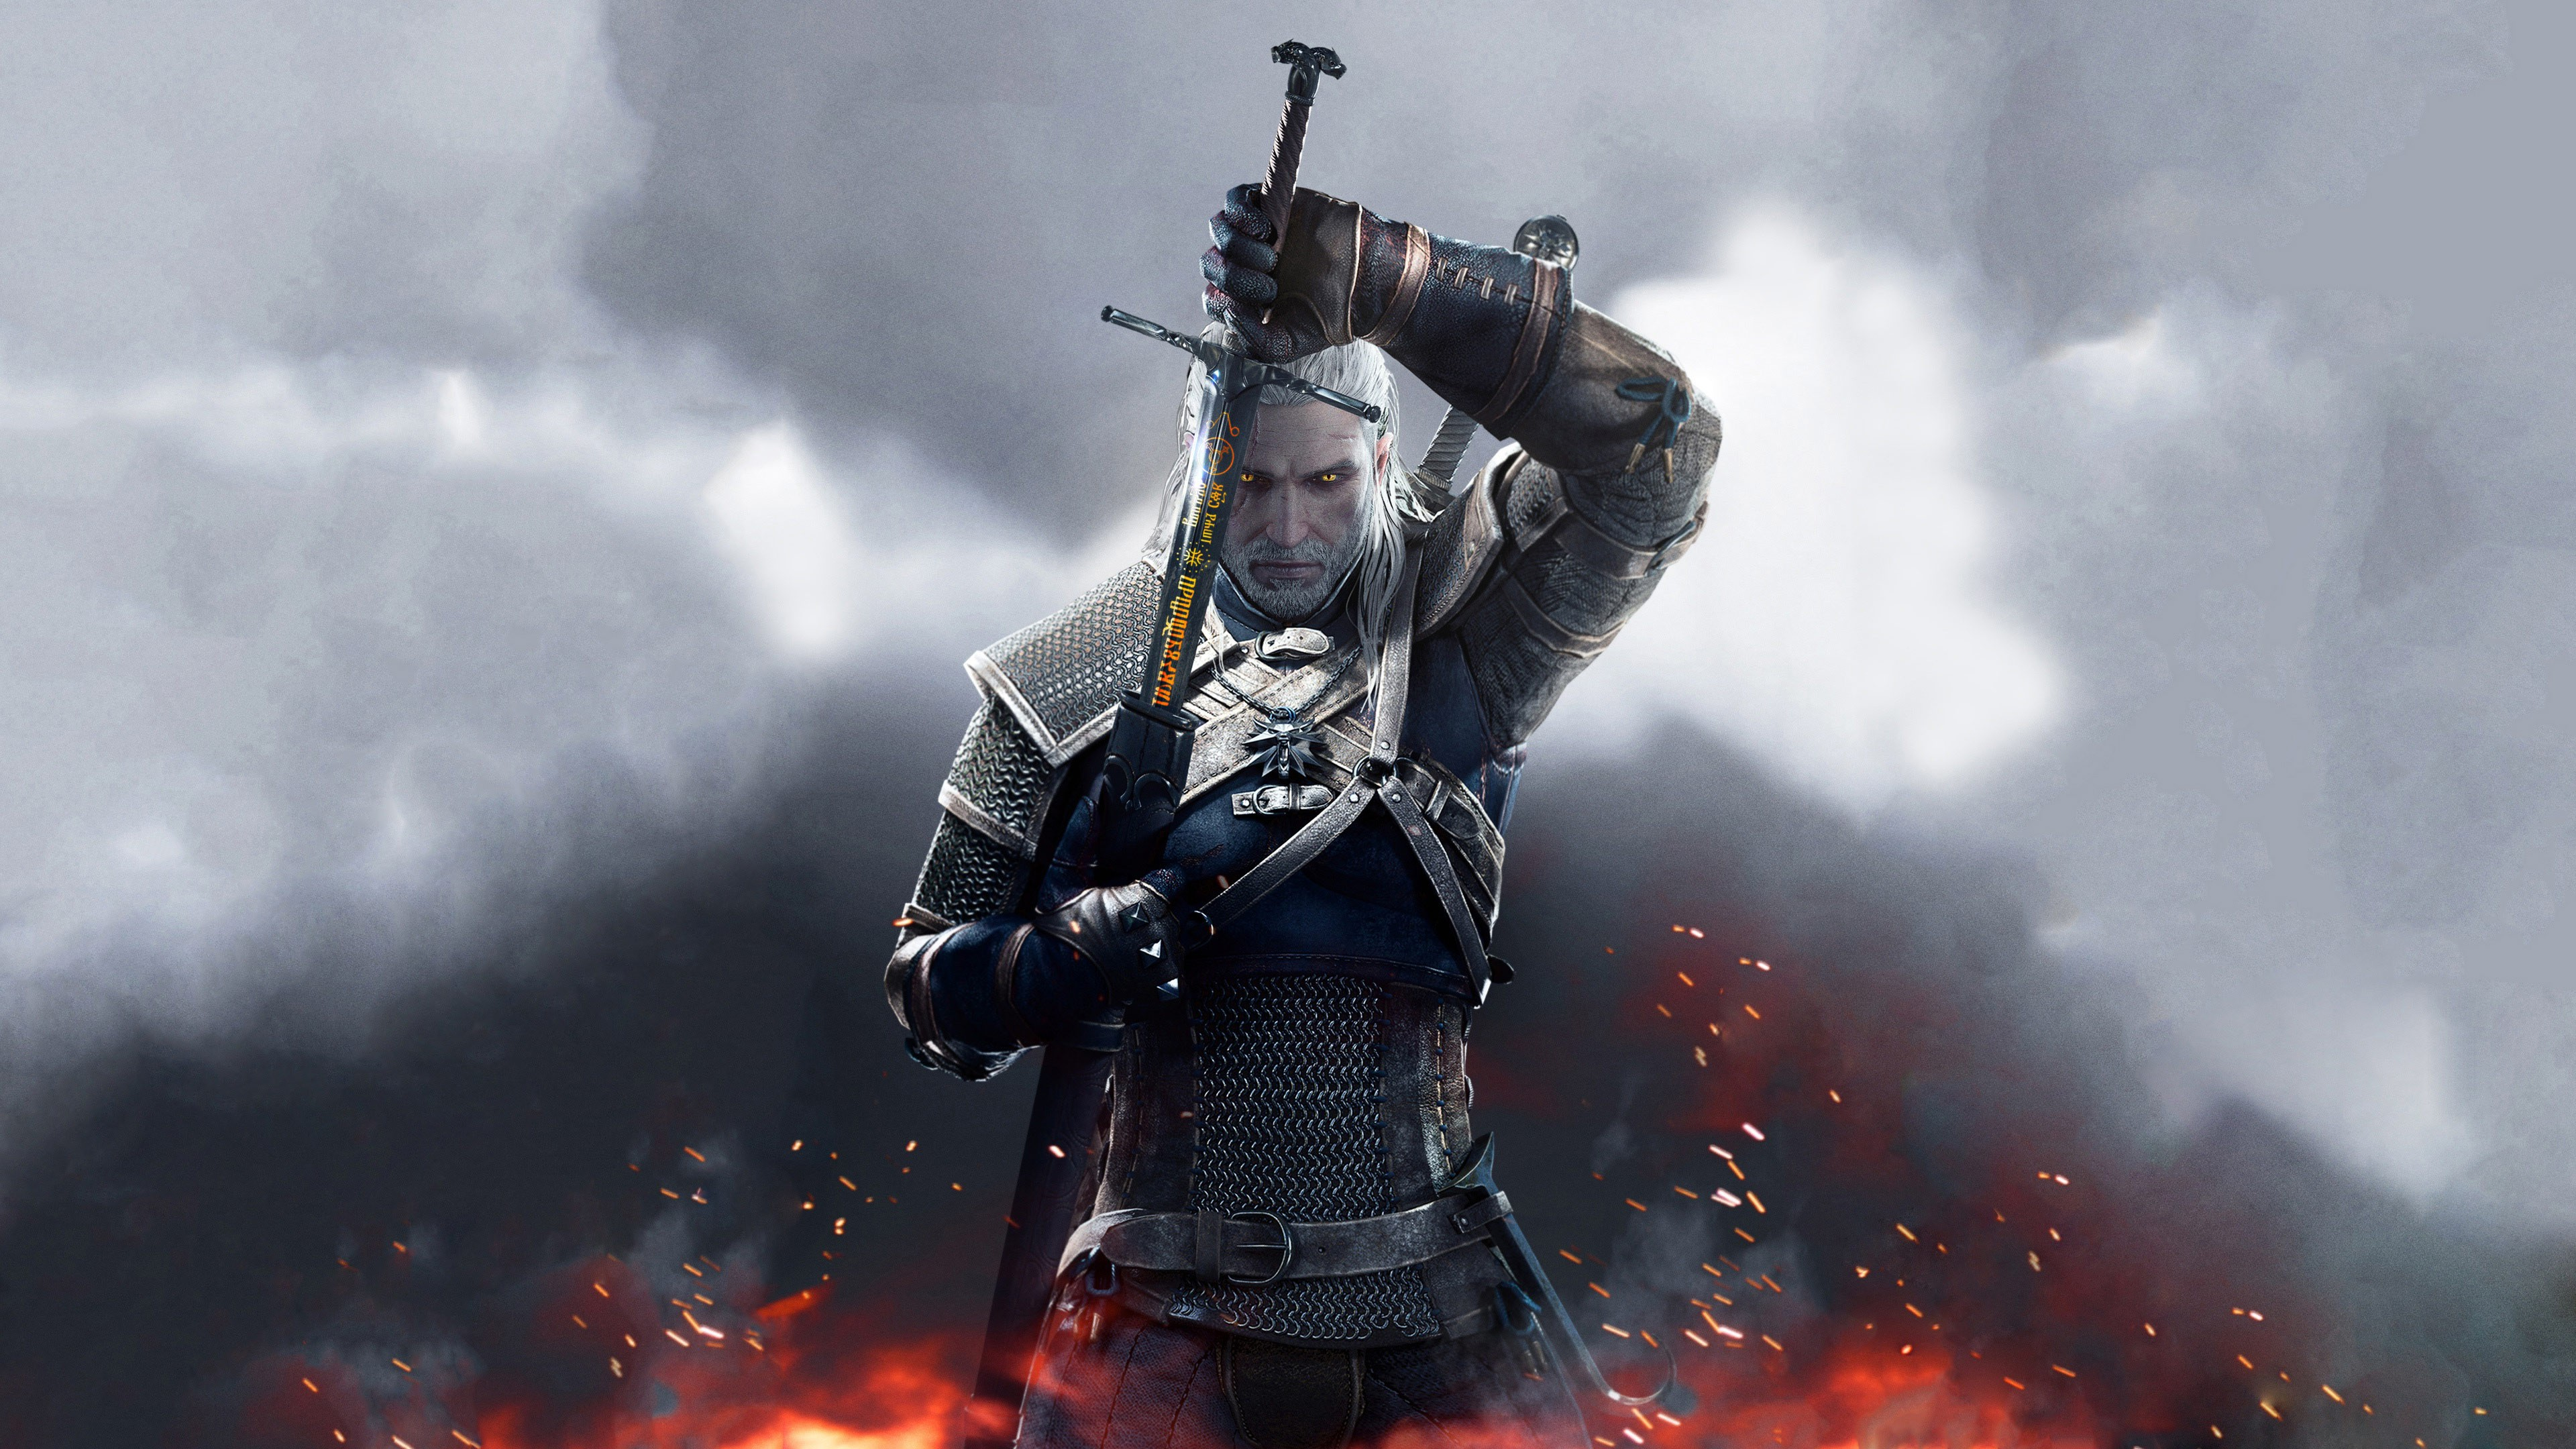 The witcher wallpaper wallpapers high quality download free - The witcher wallpaper 4k ...